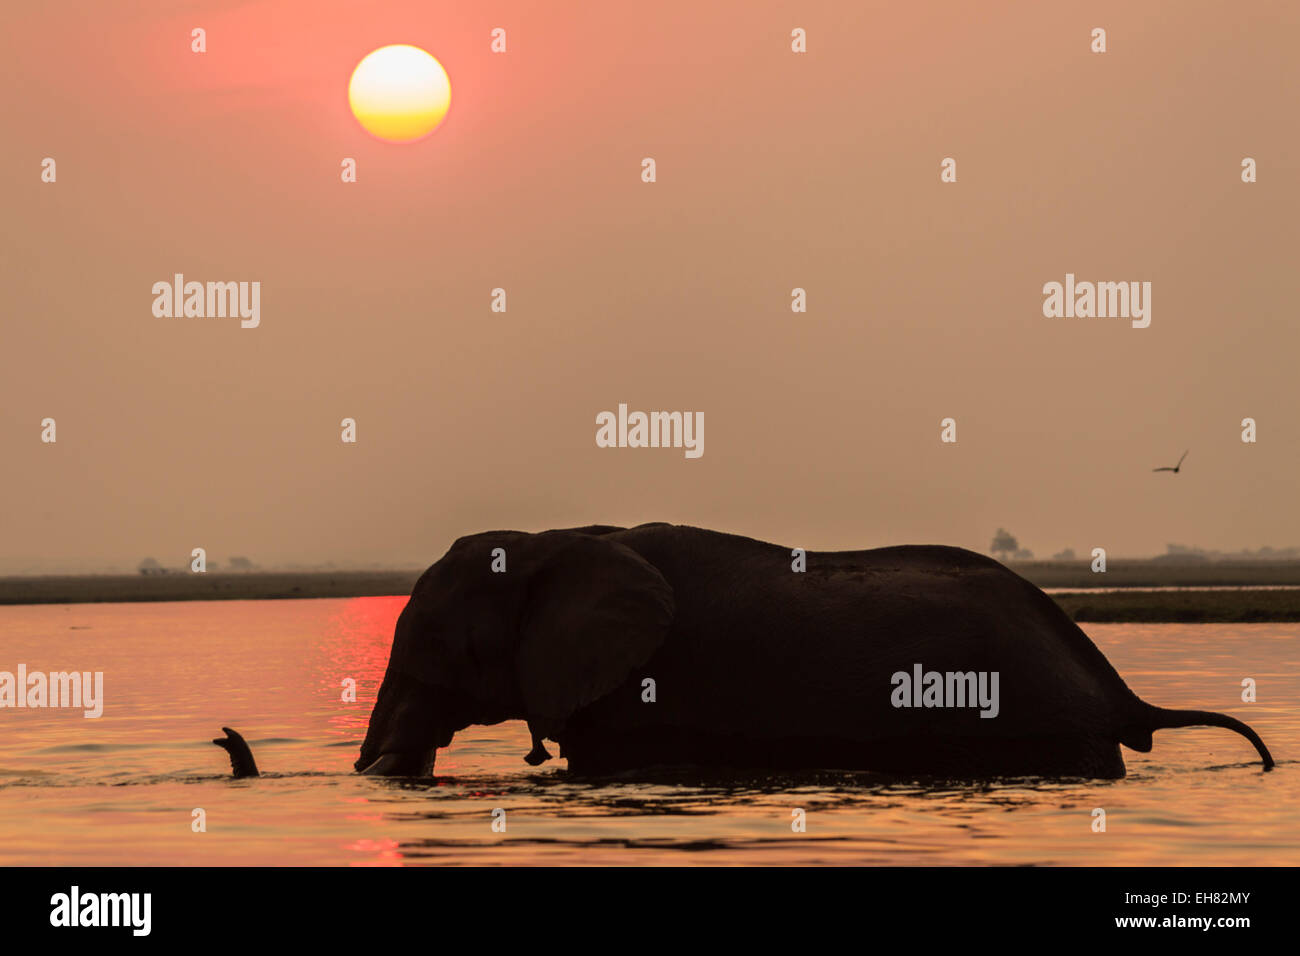 African elephant at sunset (Loxodonta africana), Chobe national park, Botswana, Africa - Stock Image